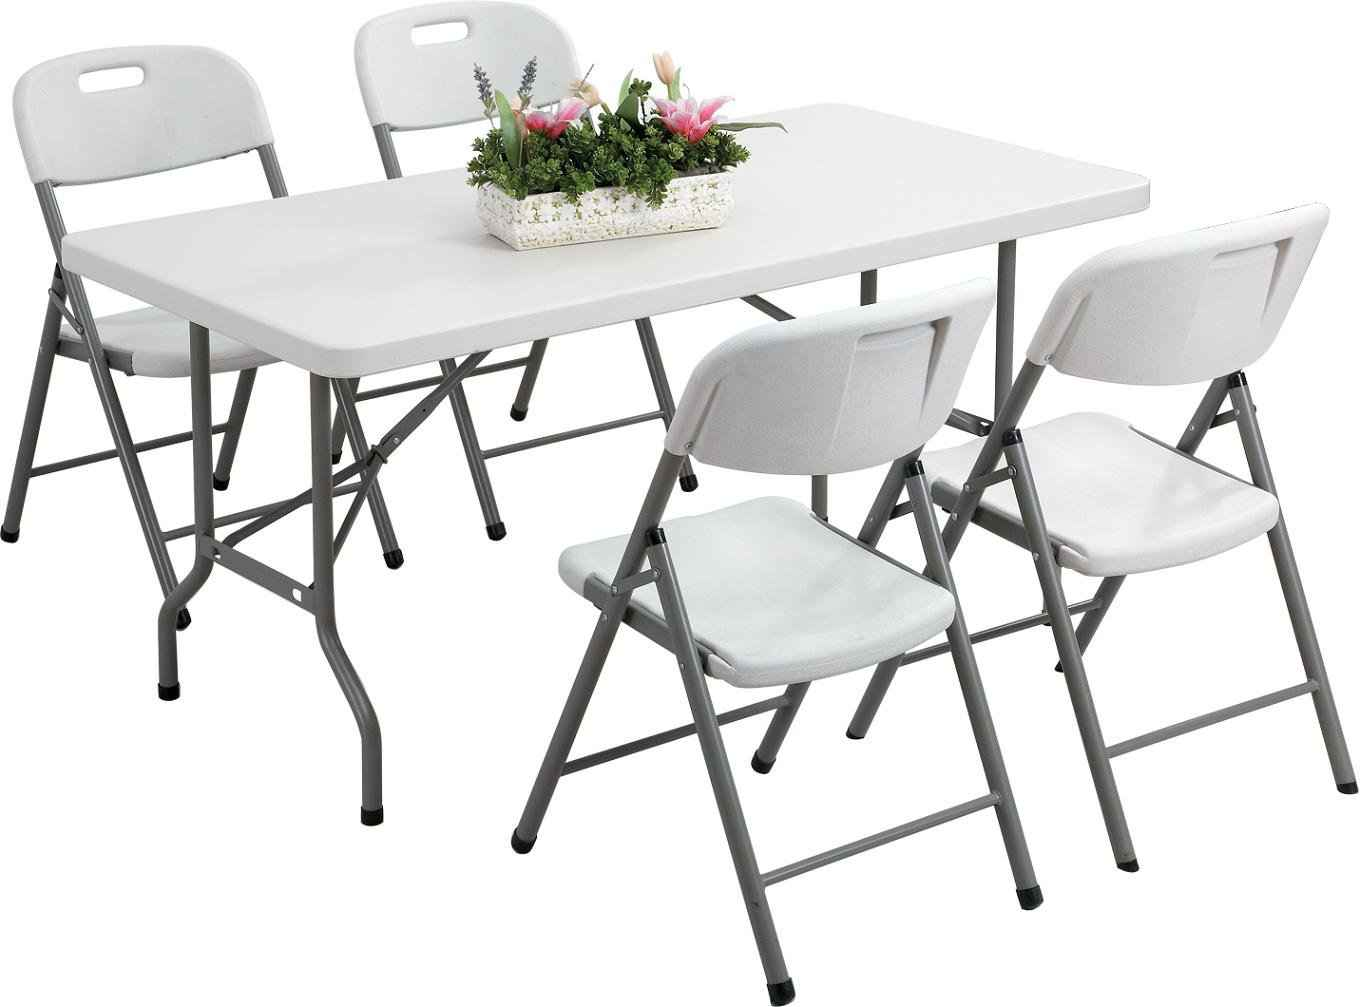 Garden table and chairs for Patio table and chairs sale